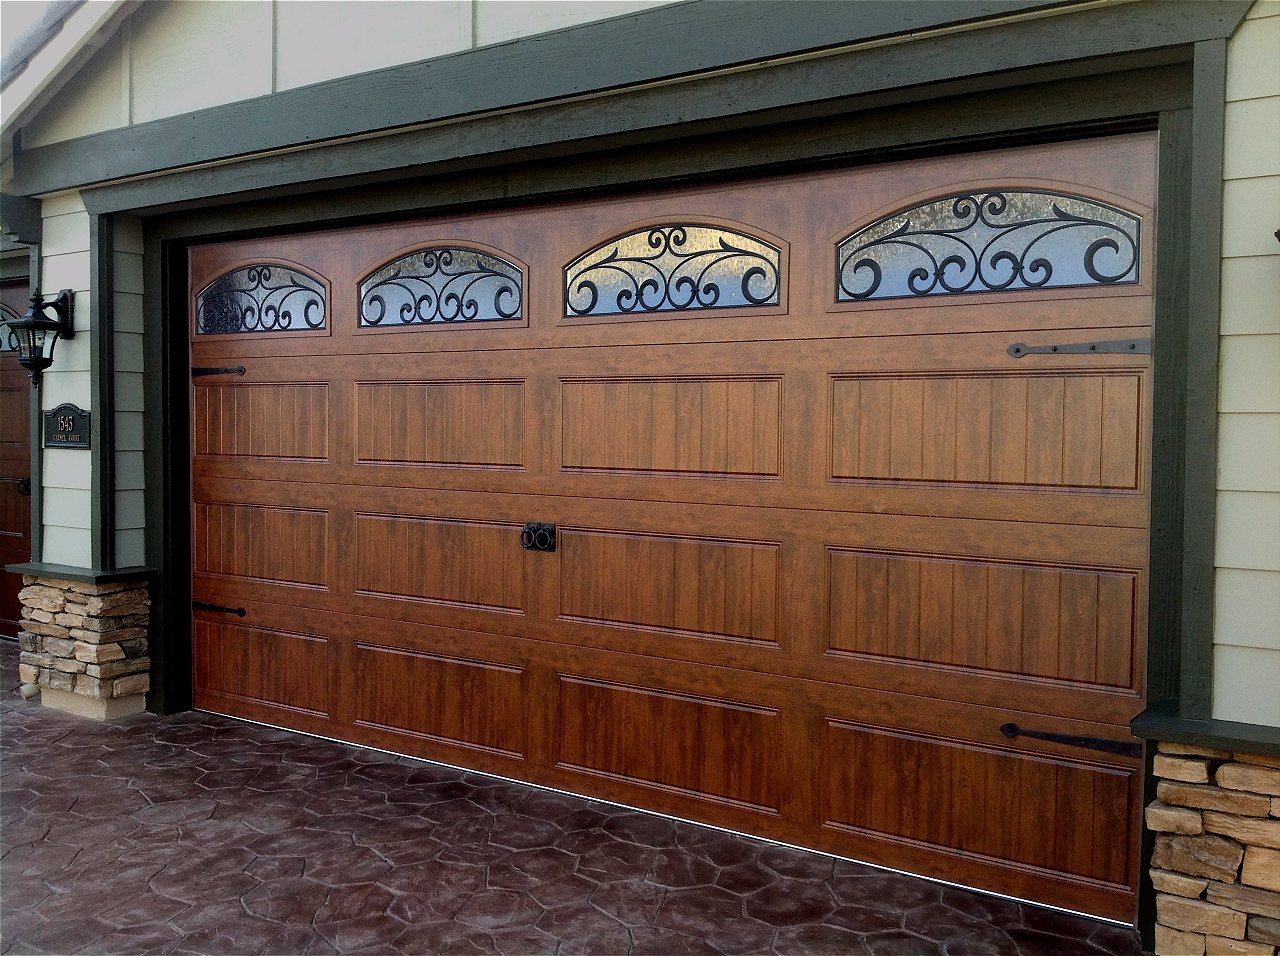 gallery - Clopay Garage Doors